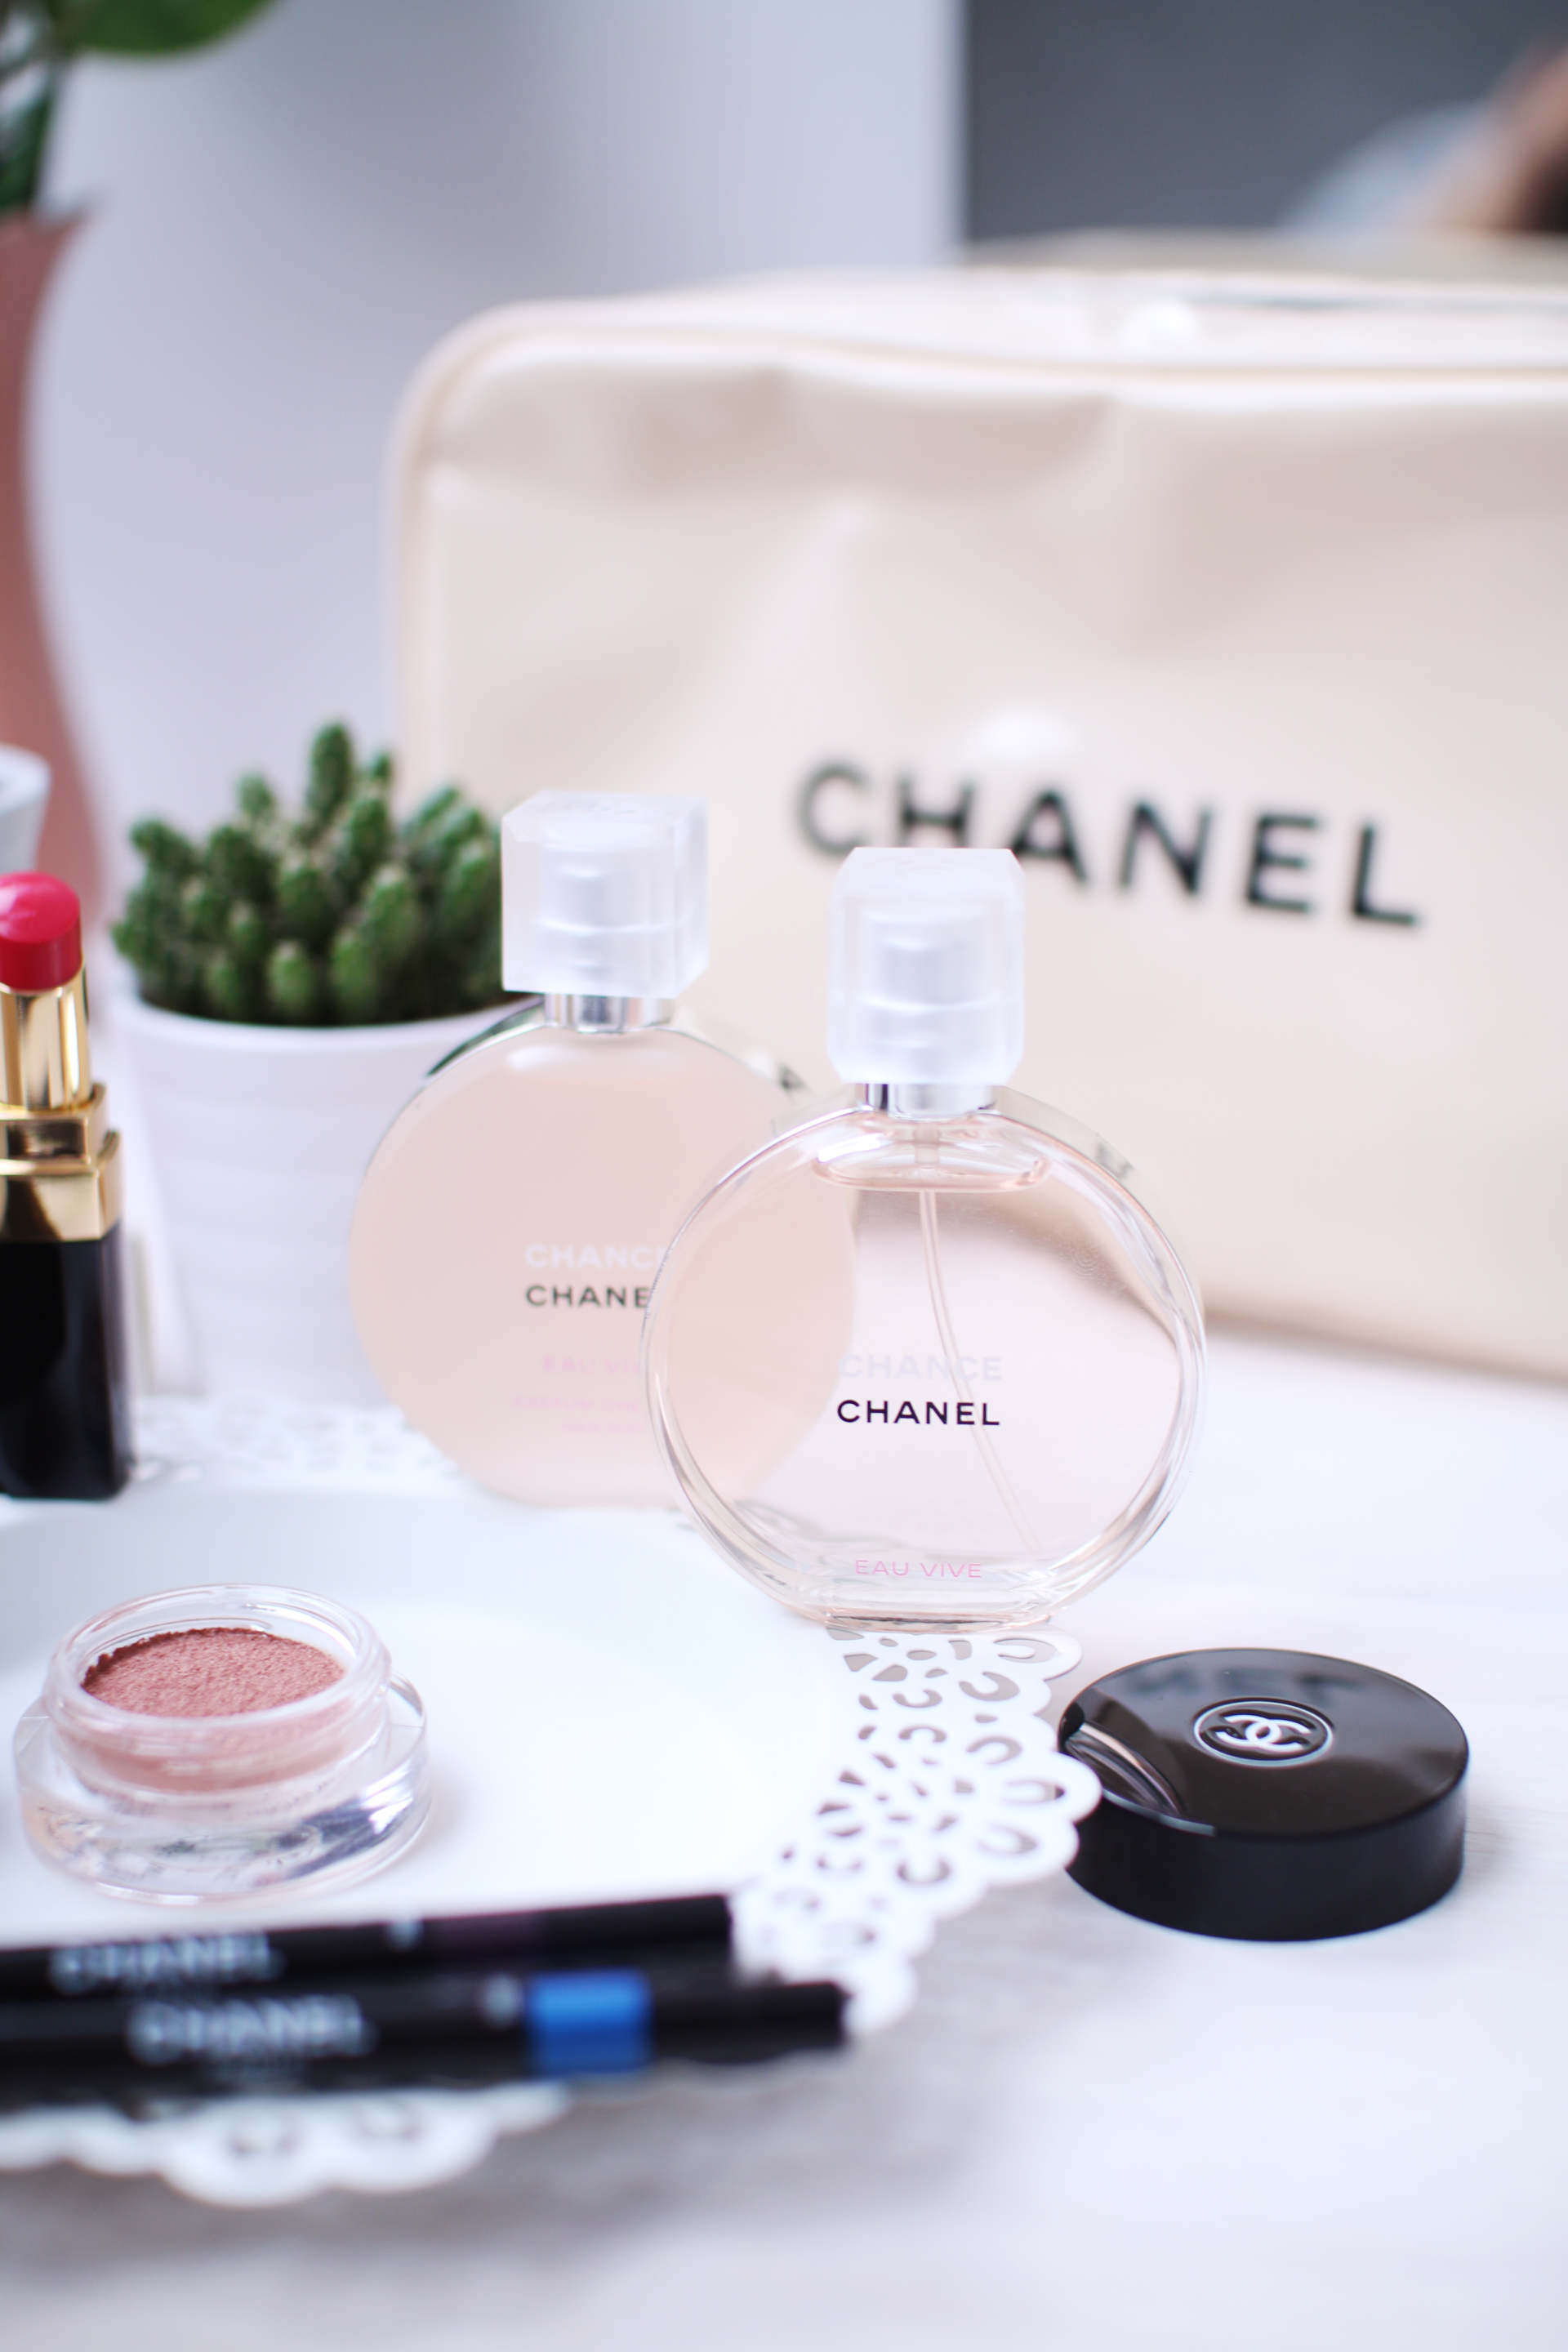 chanel hair mist and chancel chance